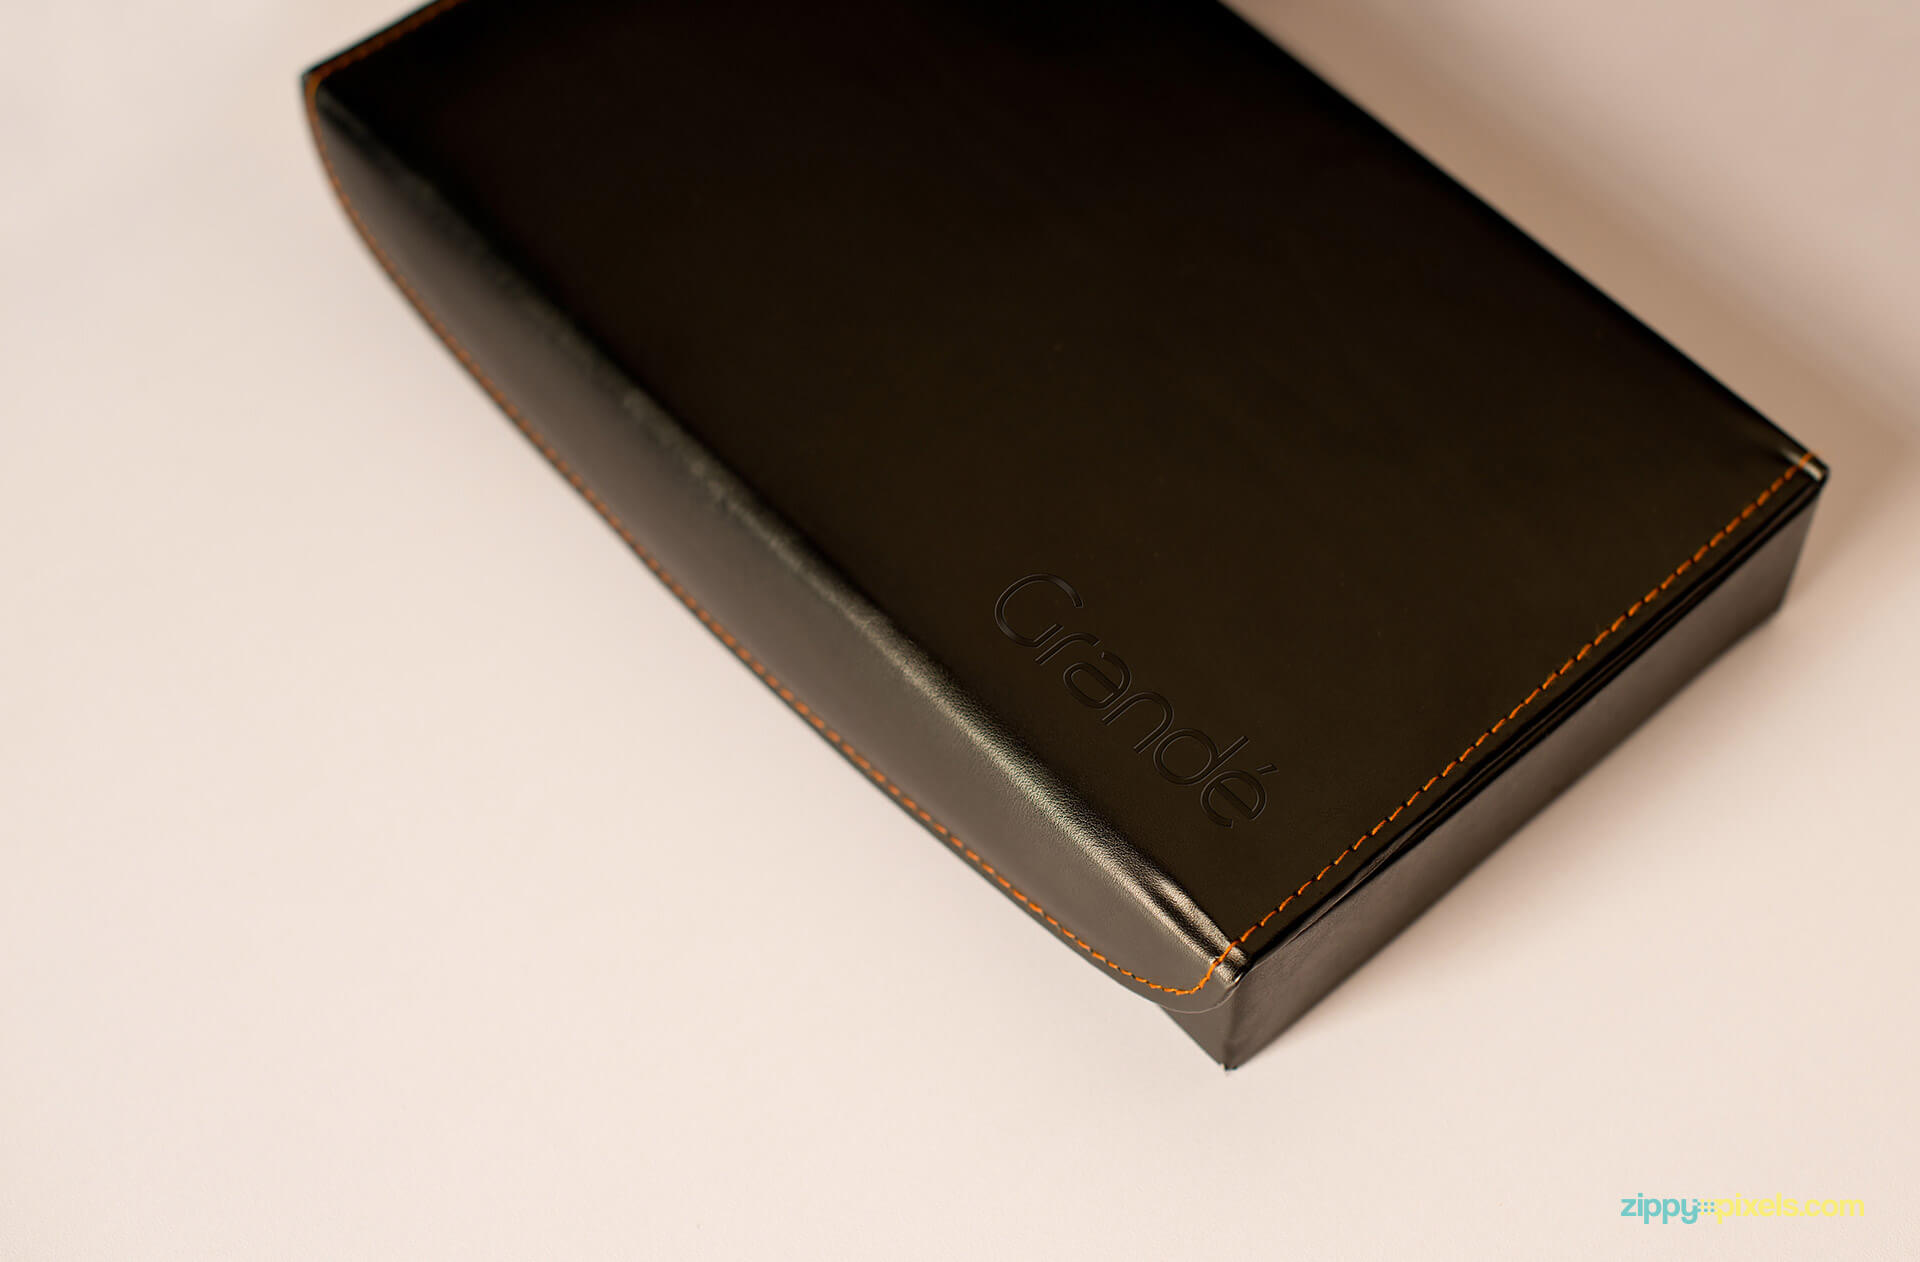 Leather Box Mockup for Brand Identity